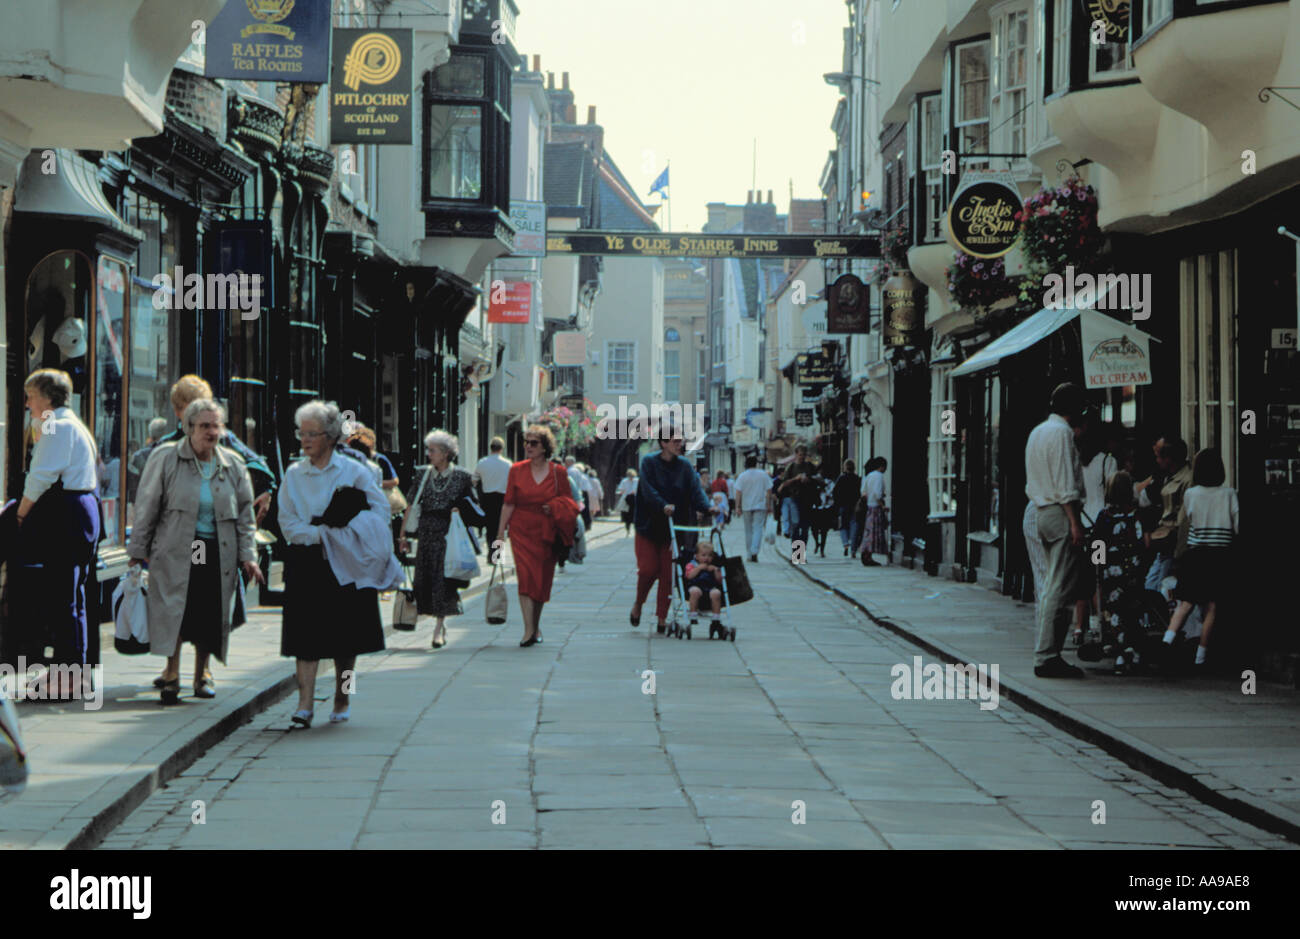 People walking on narrow pedestrianised picturesque Stonegate, City of York, North Yorkshire, England, UK. - Stock Image